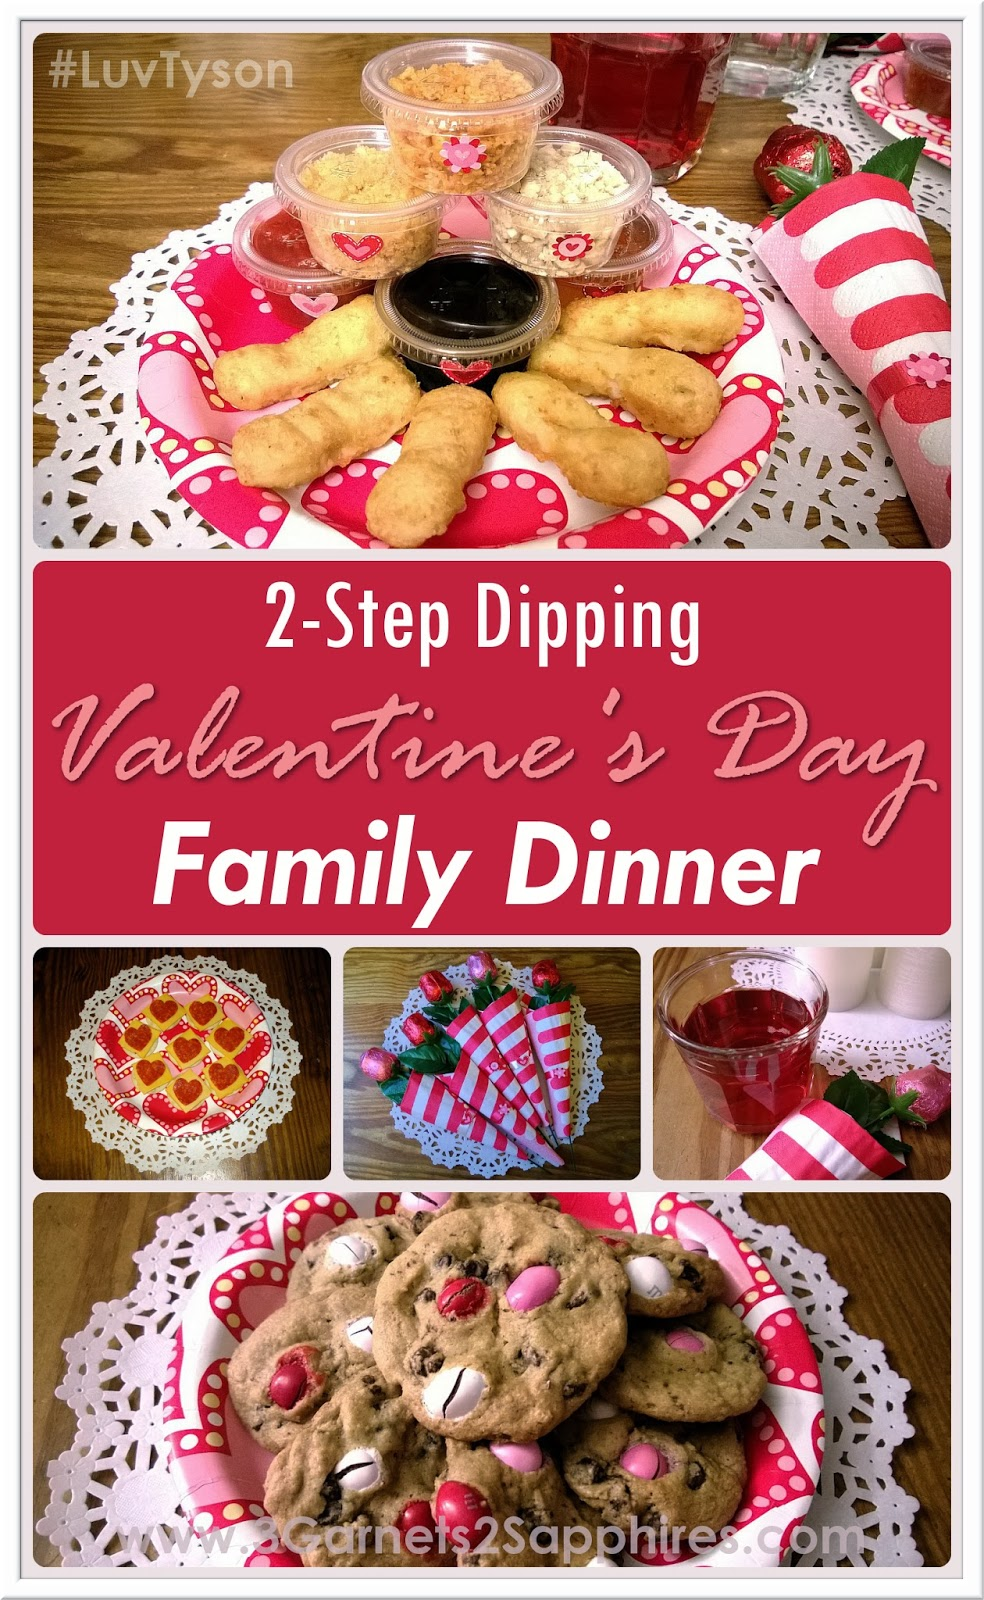 #ad: How to Have an Easy 2-Step Dipping Valentines Day Family Dinner #LuvTyson #cbias